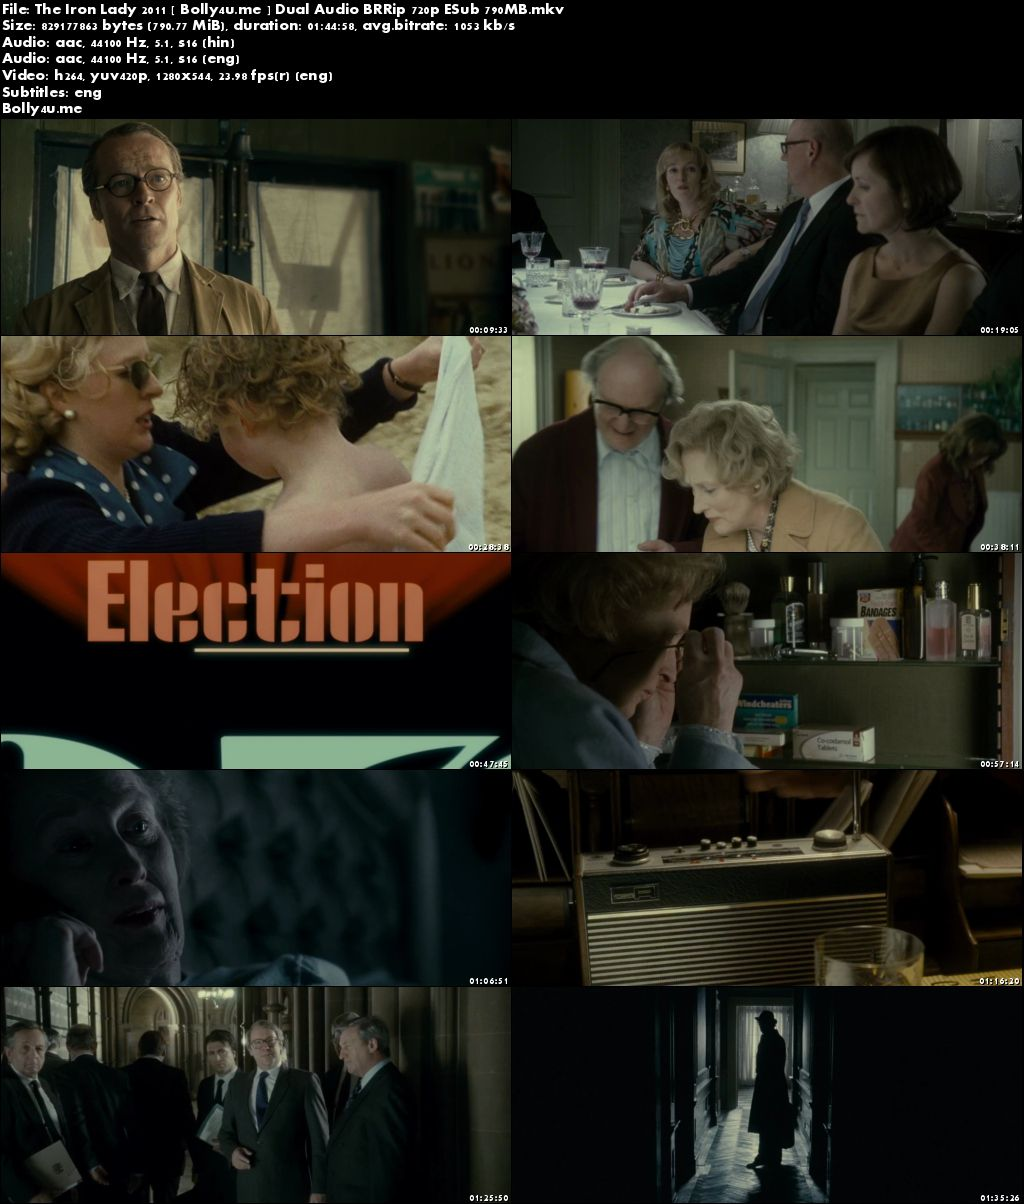 The Iron Lady 2011 BRRip 800MB Hindi Dual Audio 720p ESub